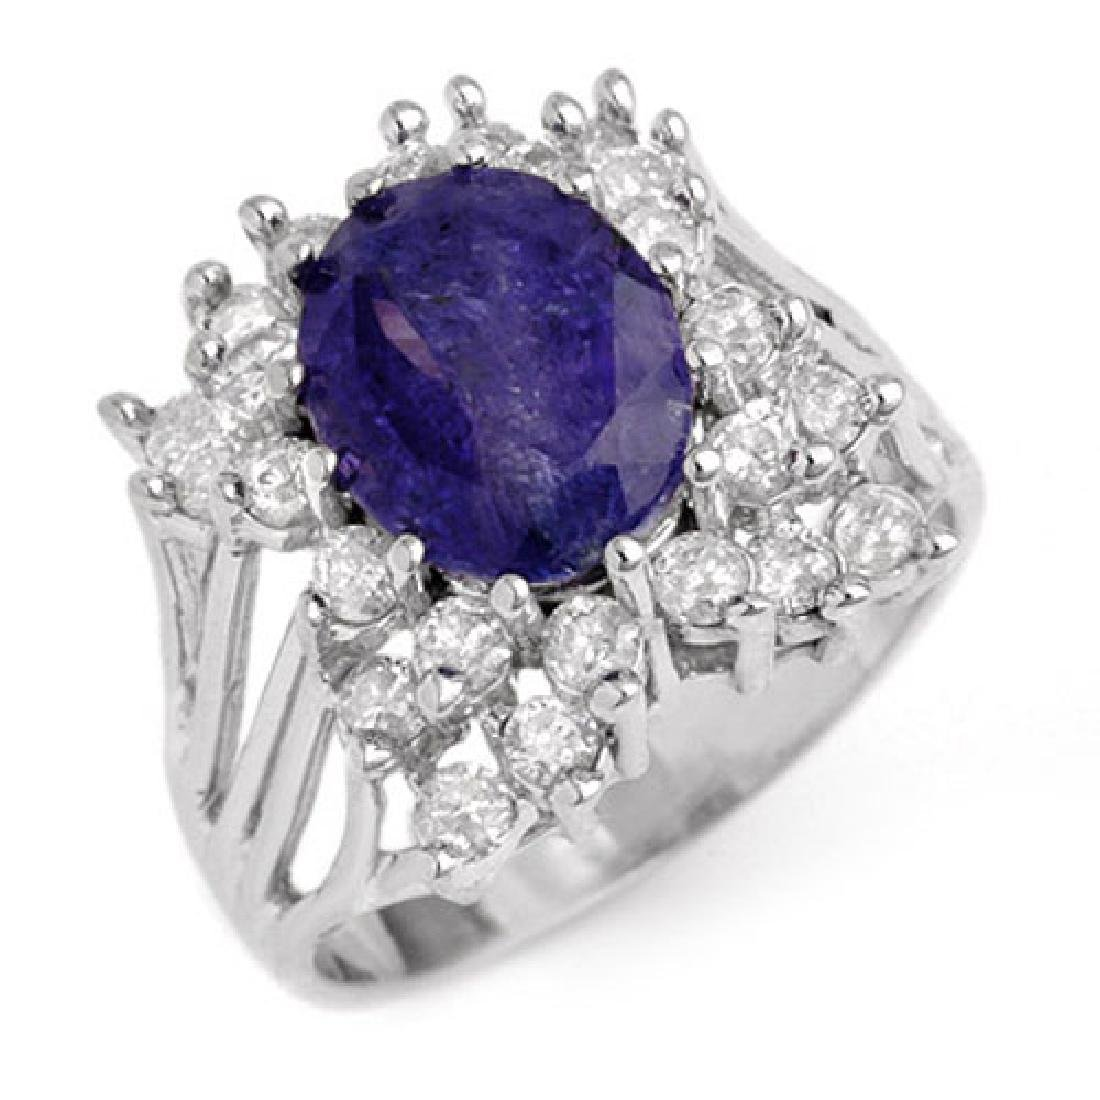 4.44 CTW Tanzanite & Diamond Ring 14K White Gold